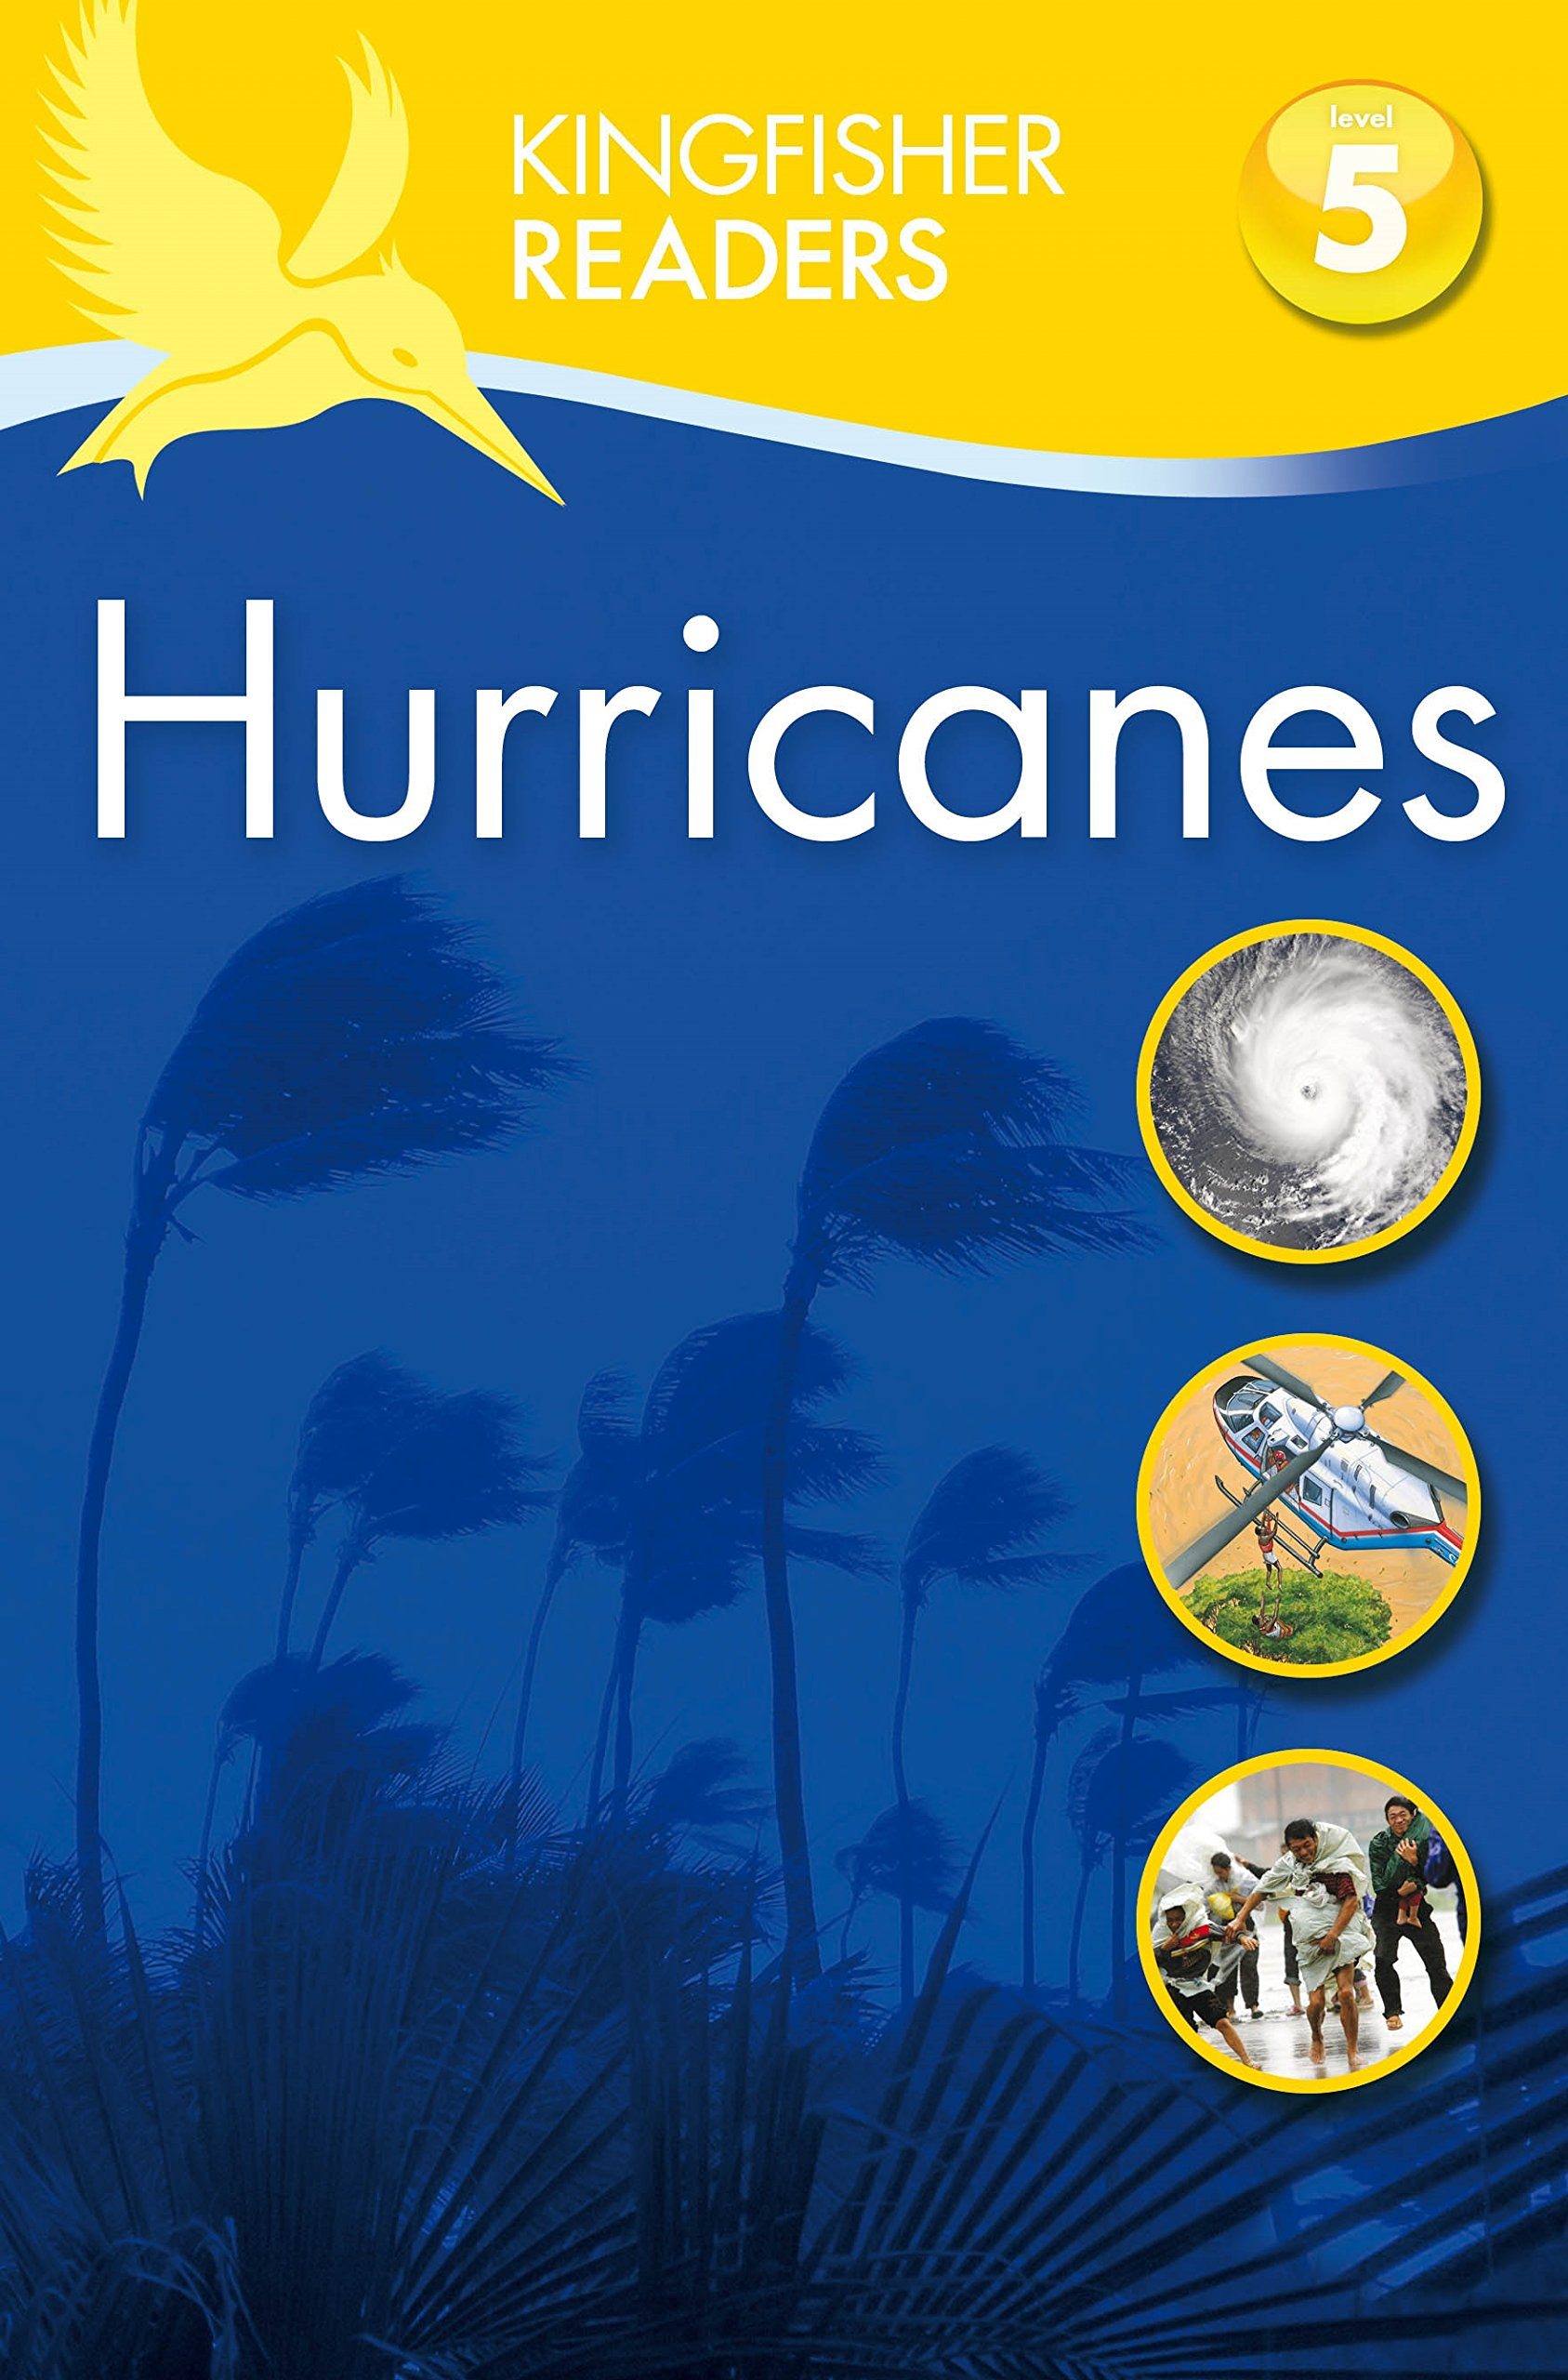 Kingfisher Readers: Hurricanes  (Level 5: Reading Fluently) reading literacy for adolescents